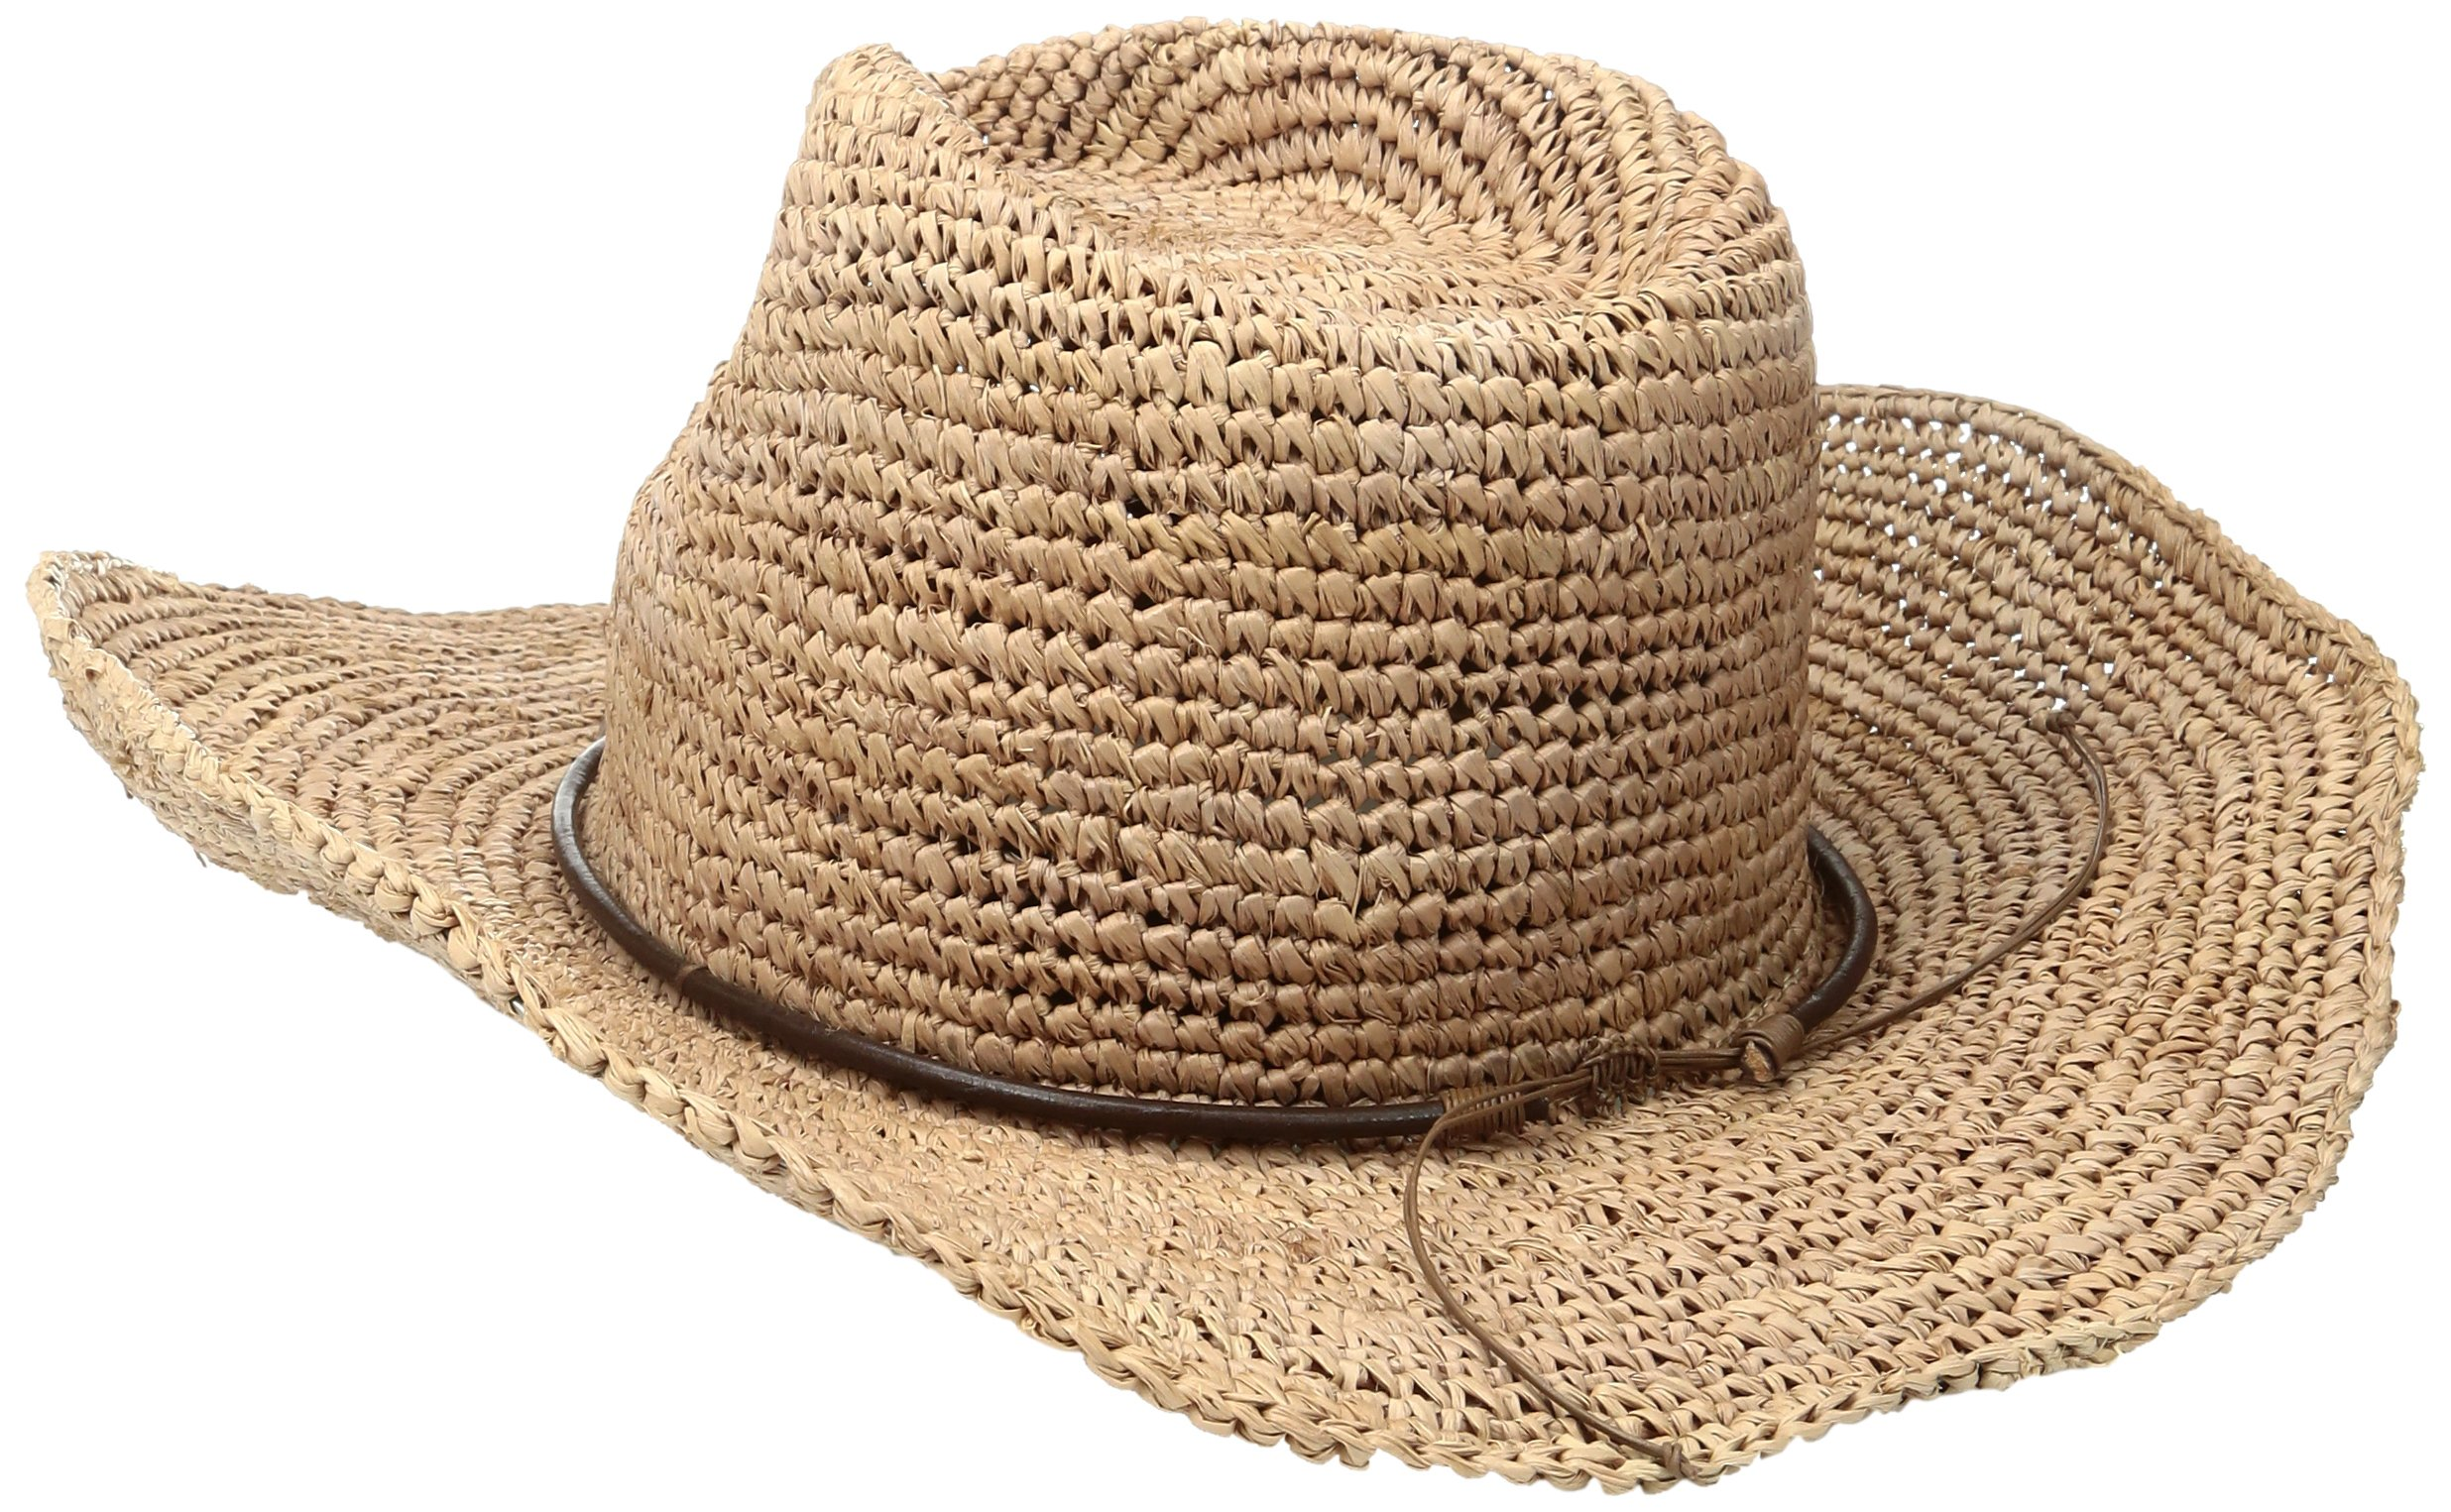 ale by Alessandra Women's Cassidy Raffia Cowboy Hat with Beaded Trim and Memory Wire Brim, Cocoa, One Size by ale by Alessandra (Image #2)